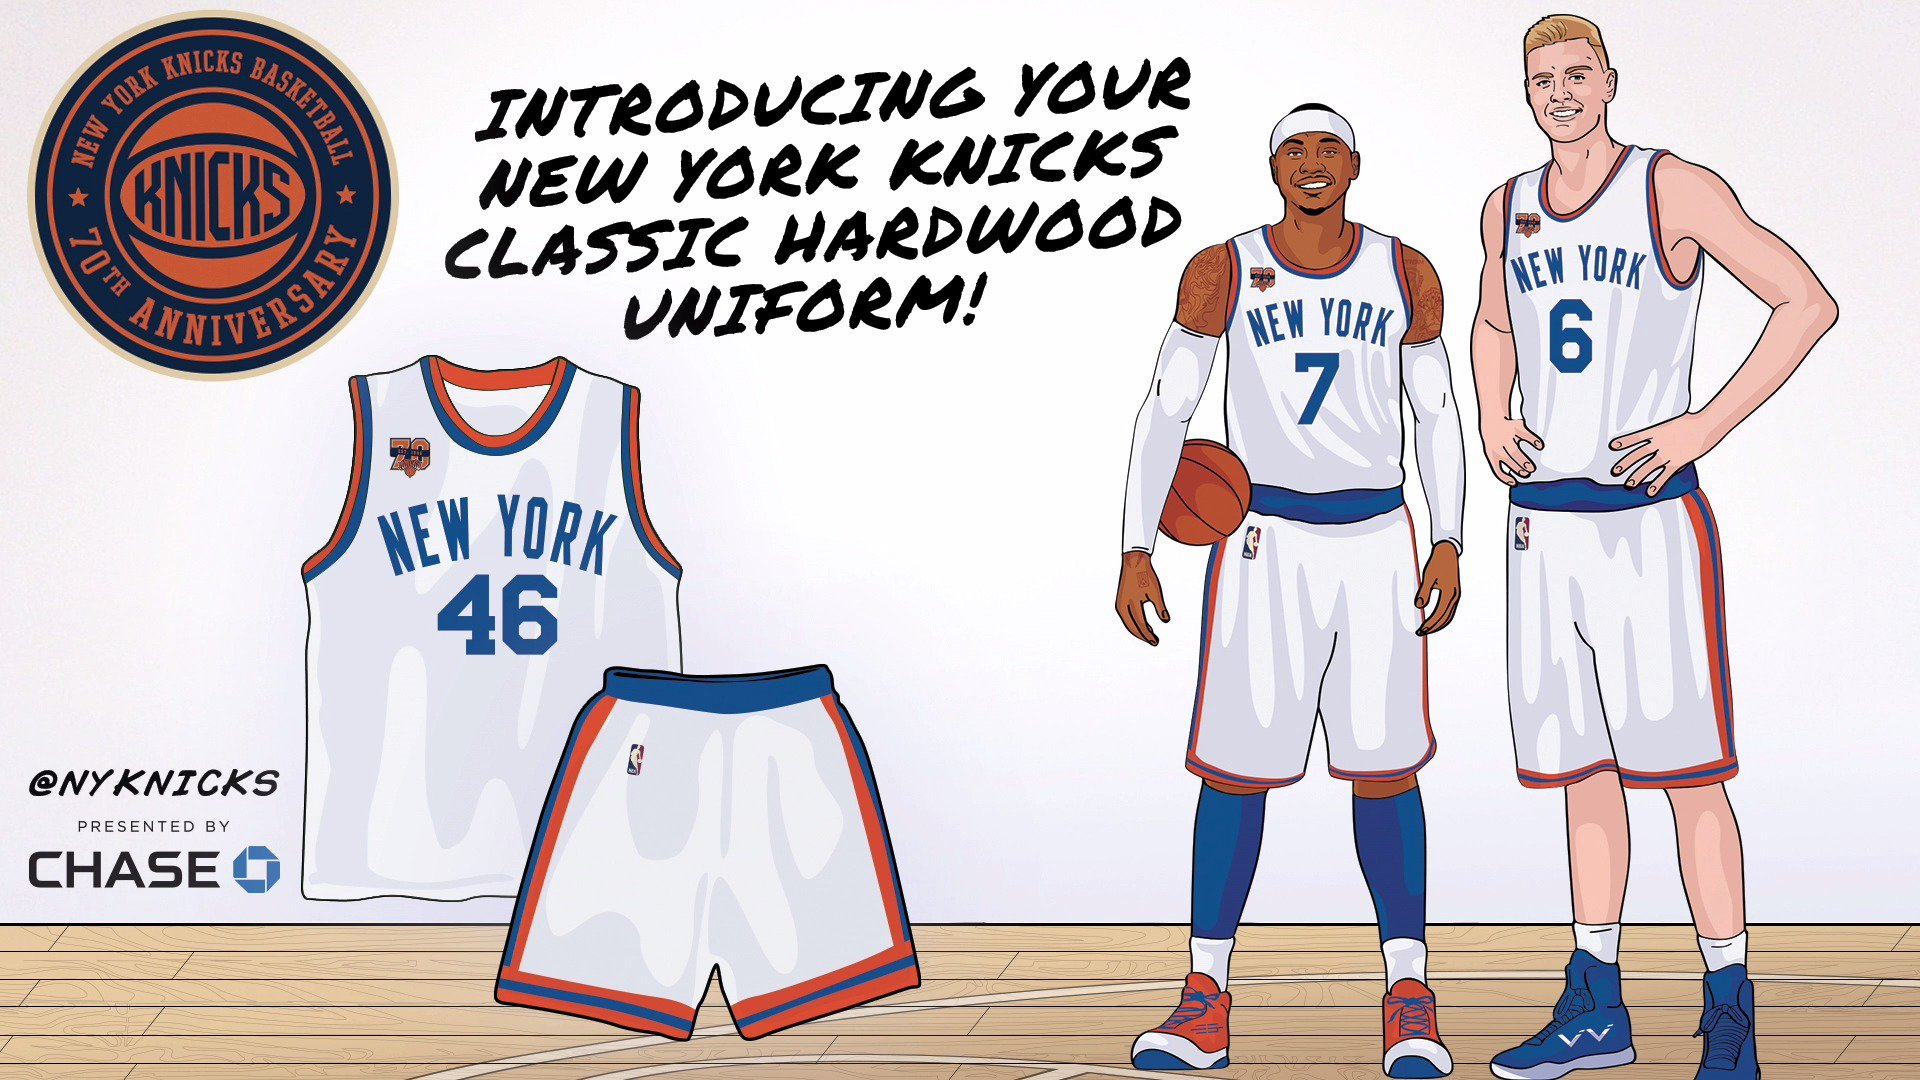 Here's your exclusive look at our Hardwood Classic jerseys this year! 42 days until the opener! #NYK70 https://t.co/W7B4zwP5zB